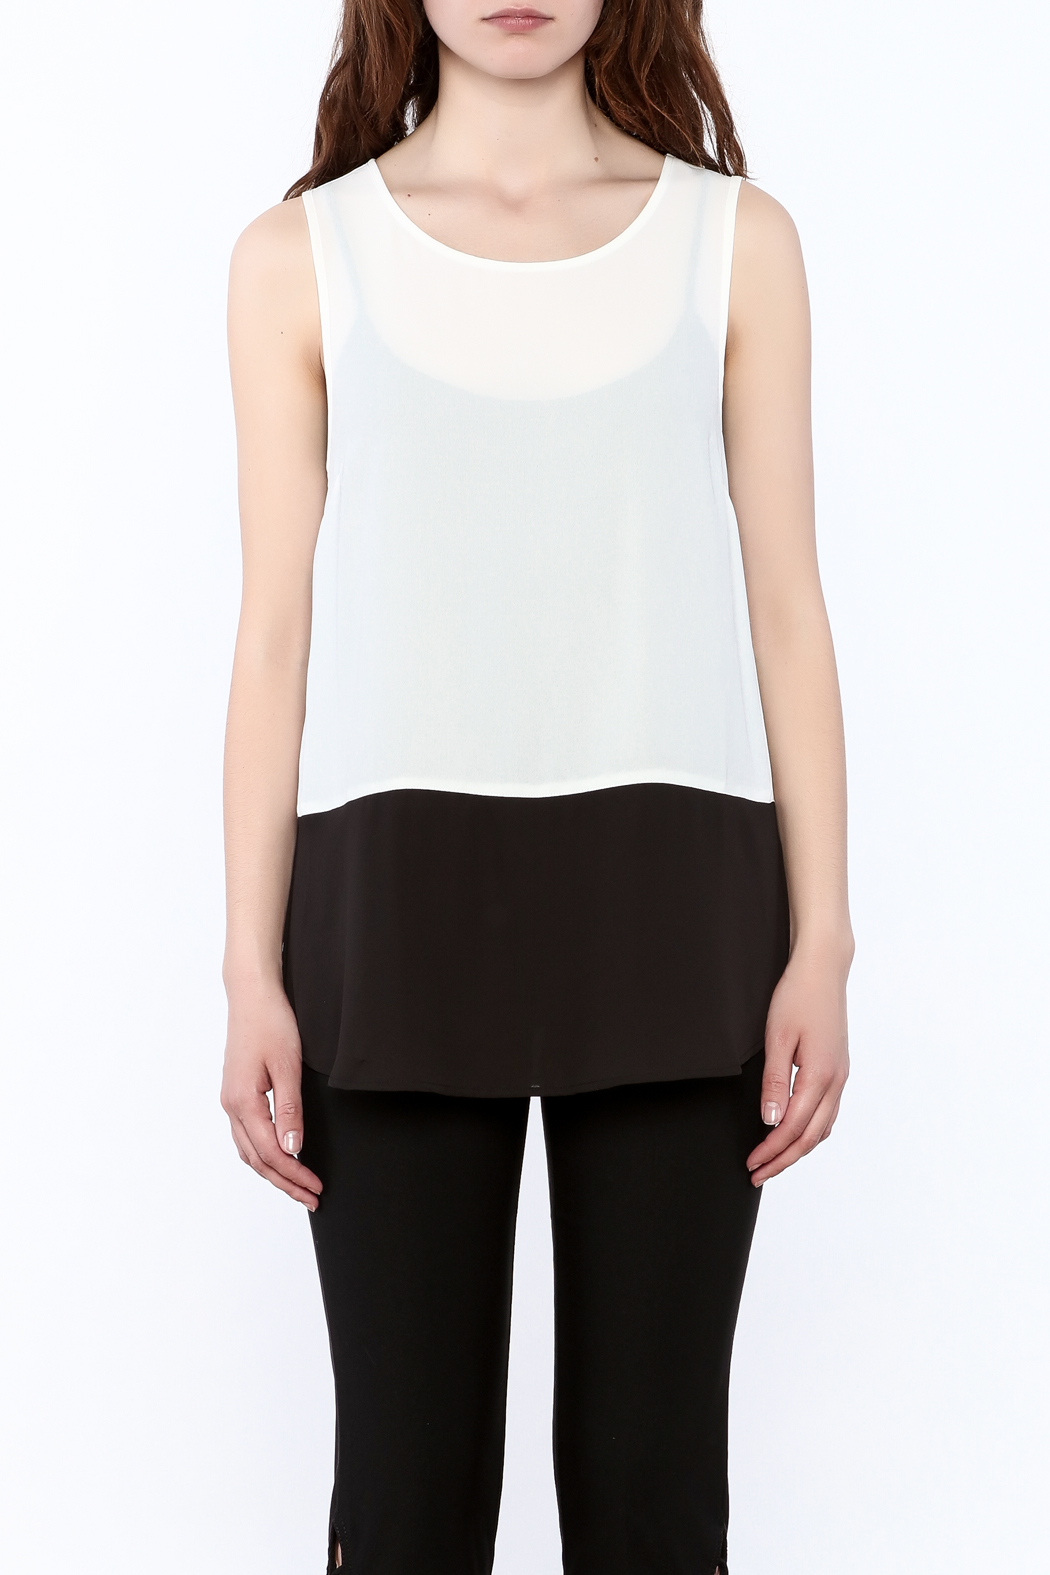 Charlie Paige Loose Fit Chiffon Top - Side Cropped Image